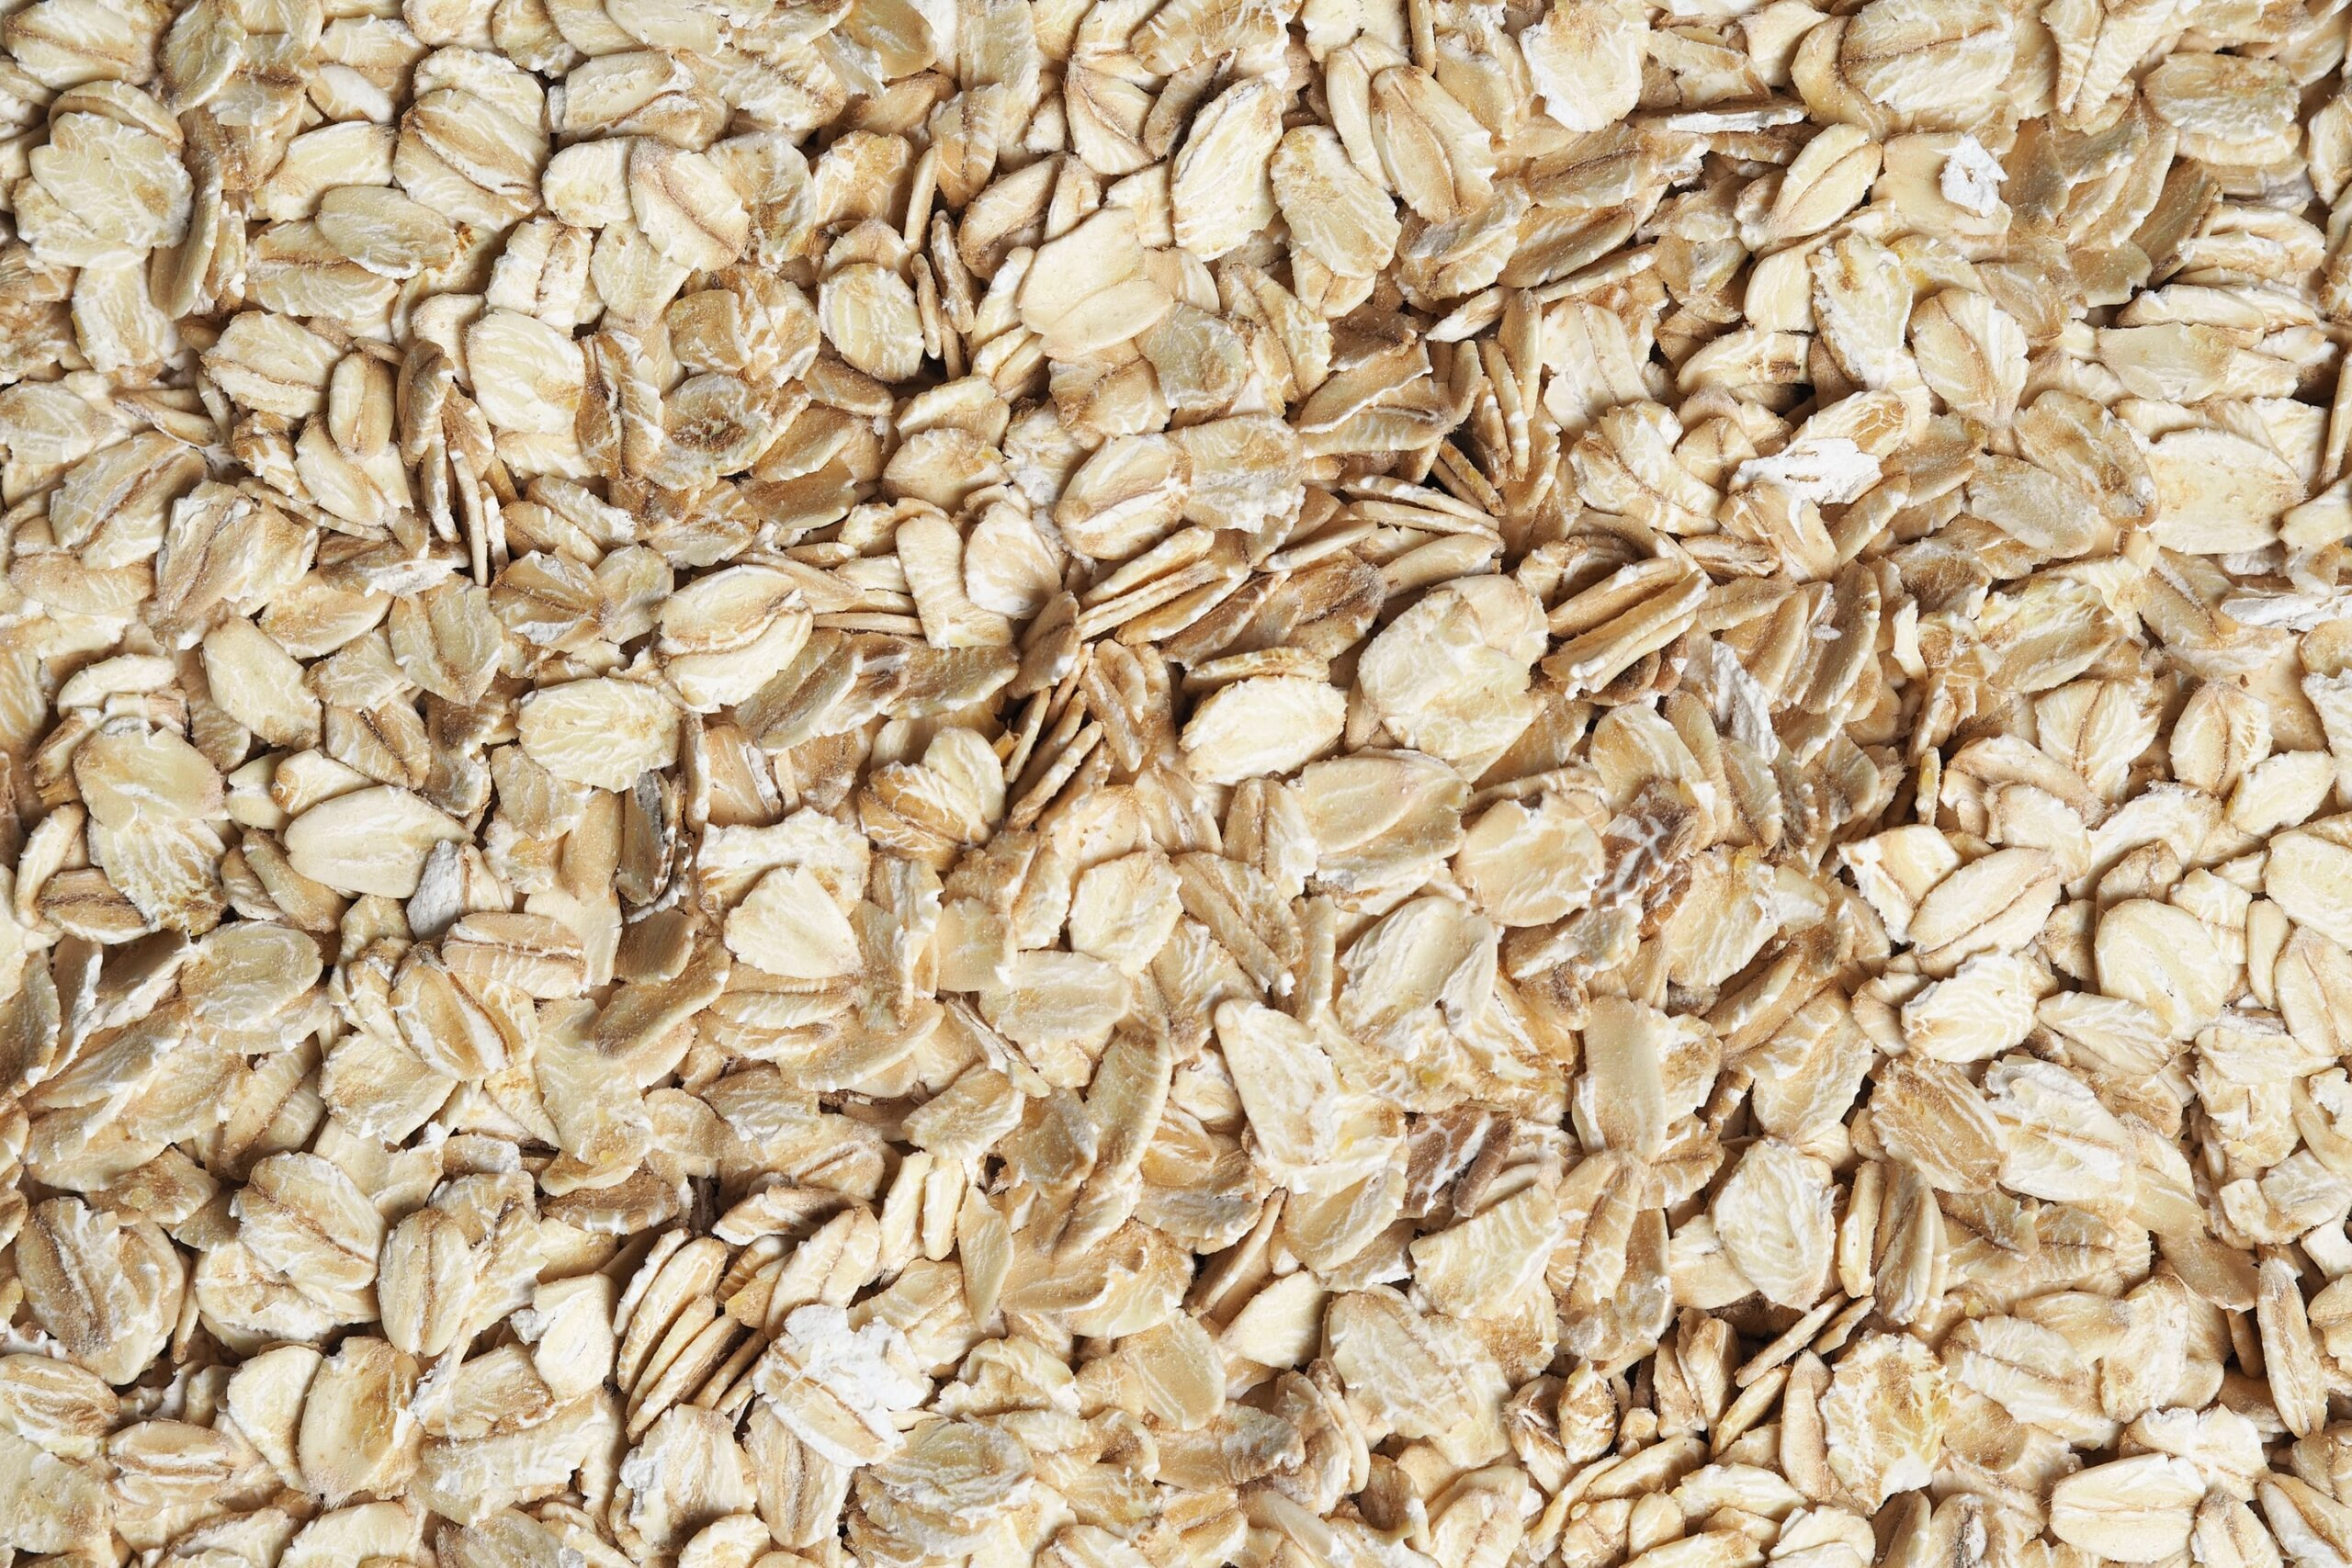 Processing Oats to Preserve Nutrient Dense β-Glucans